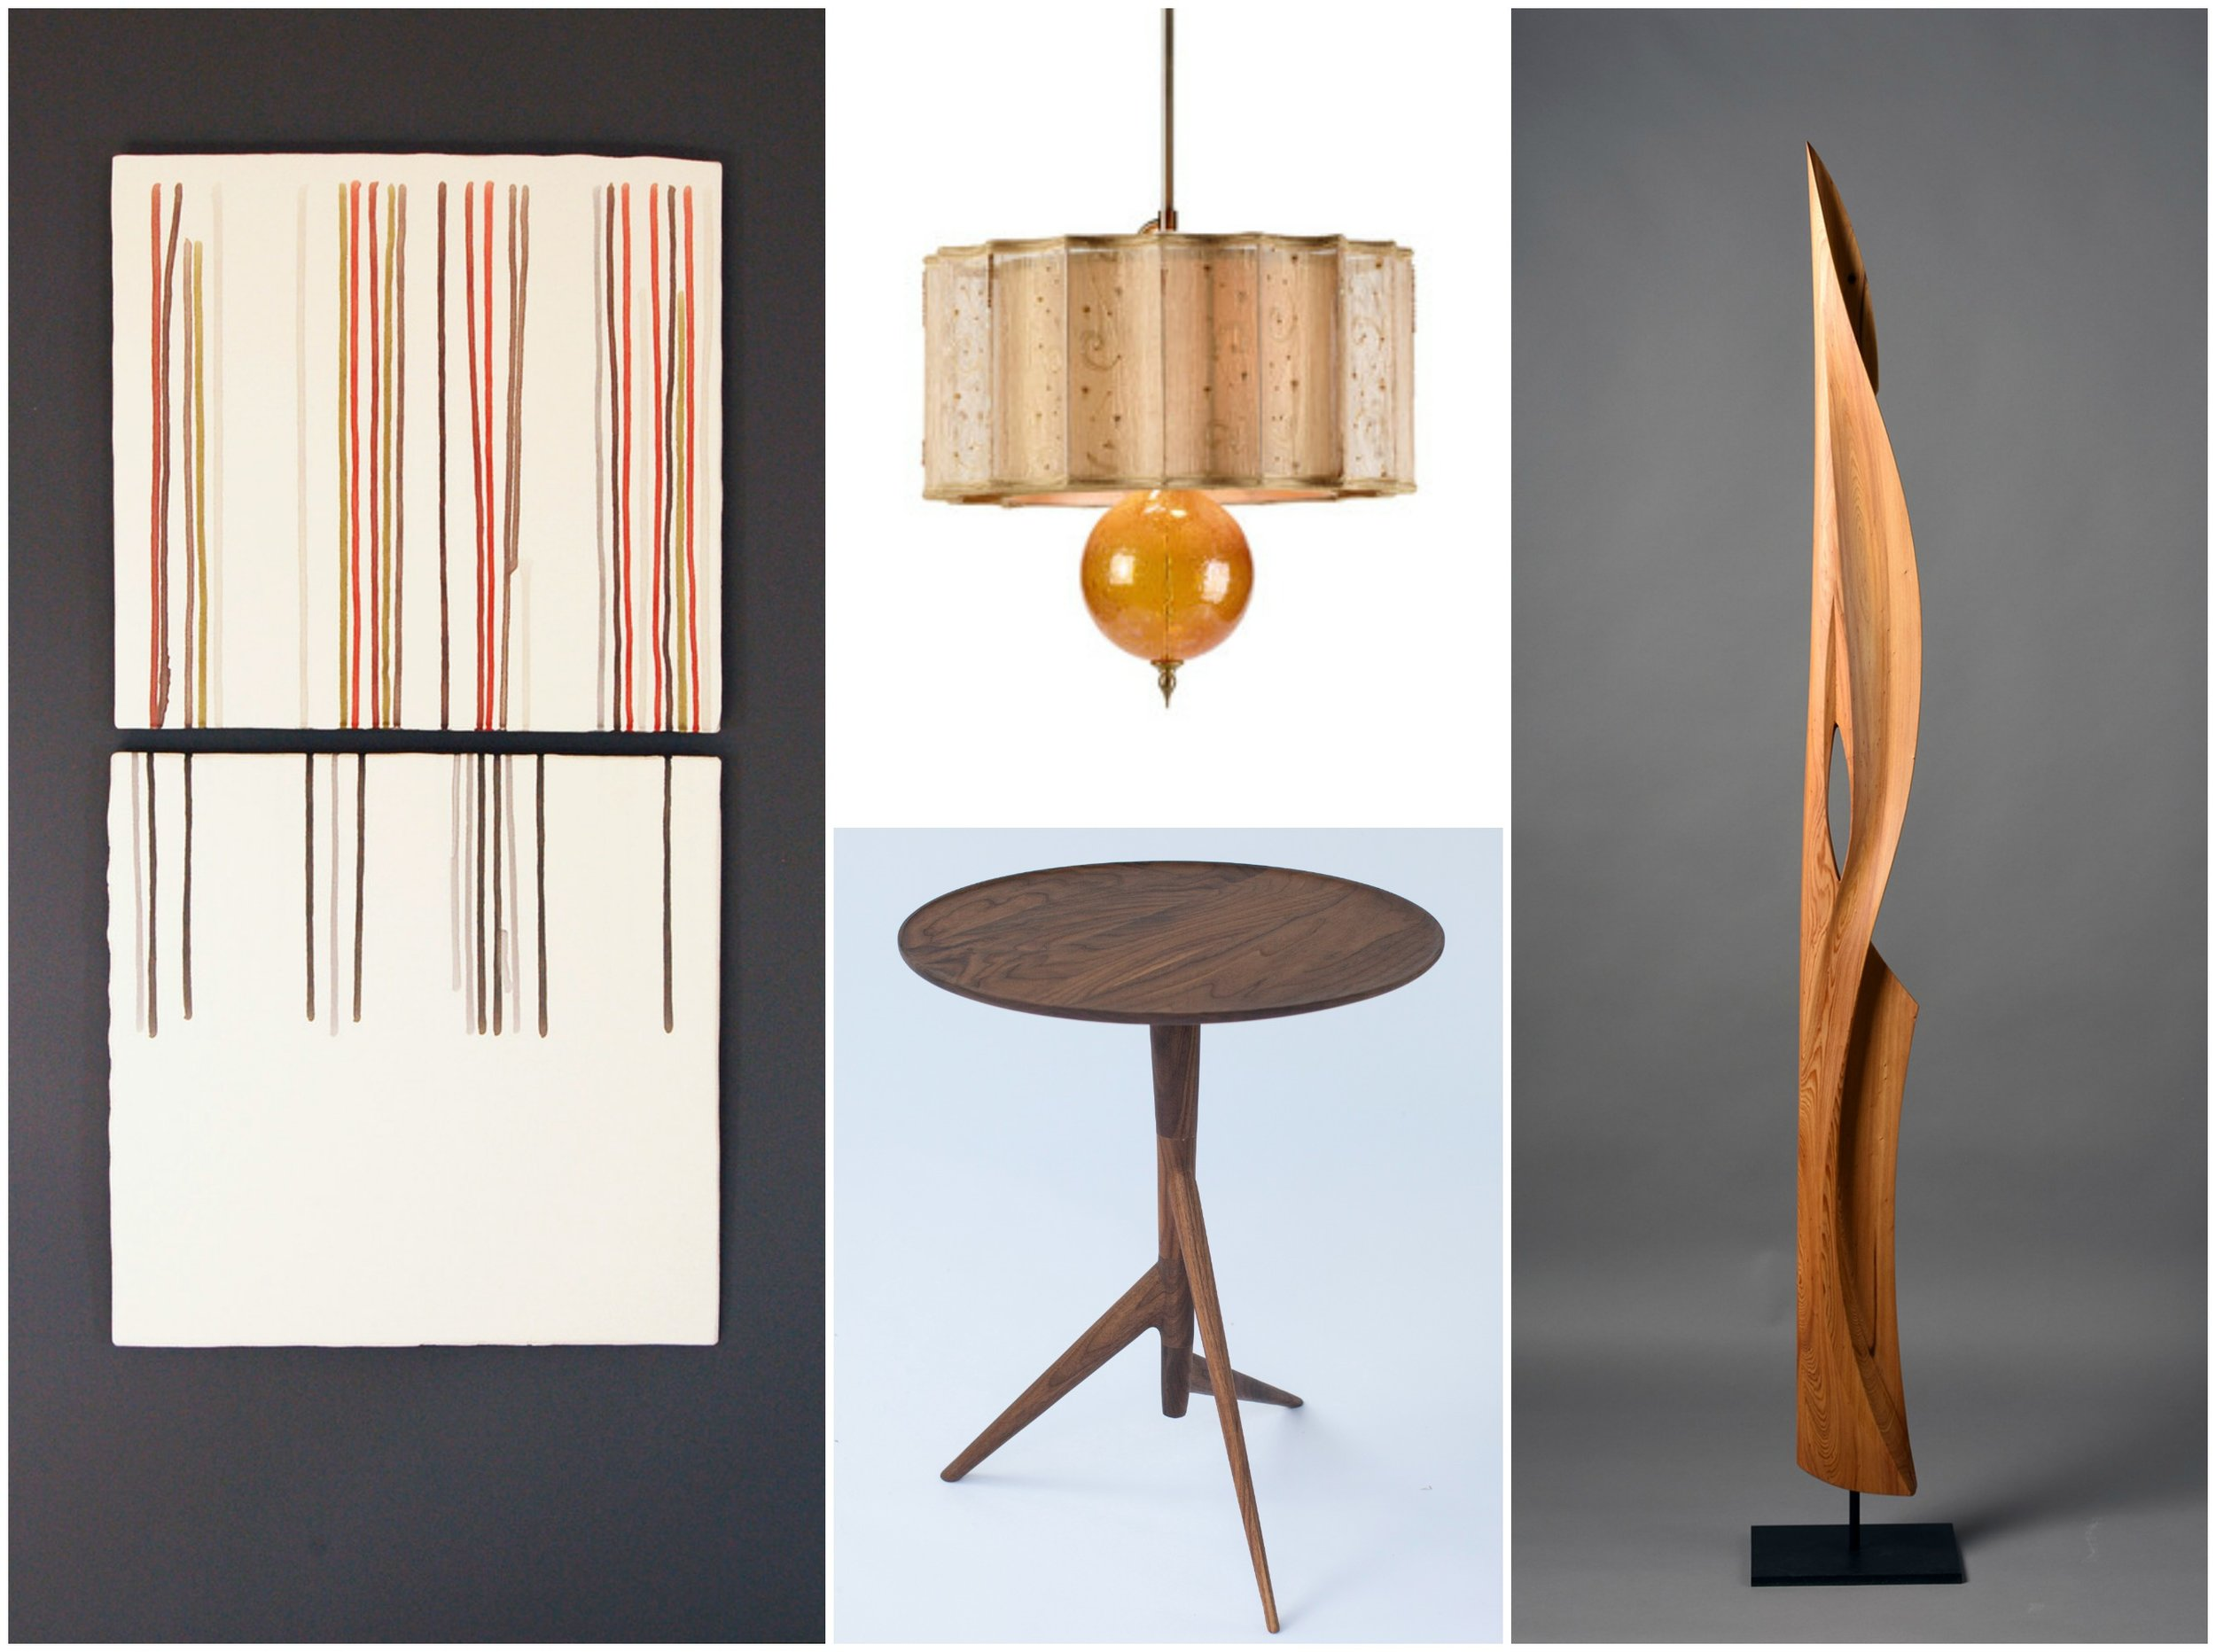 From left to right: James Aarons Ceramic wall art, lamp from Kinzig Design, end table from Slice Furniture/Kevin Costello and wood sculpture from Koji Tanaka.